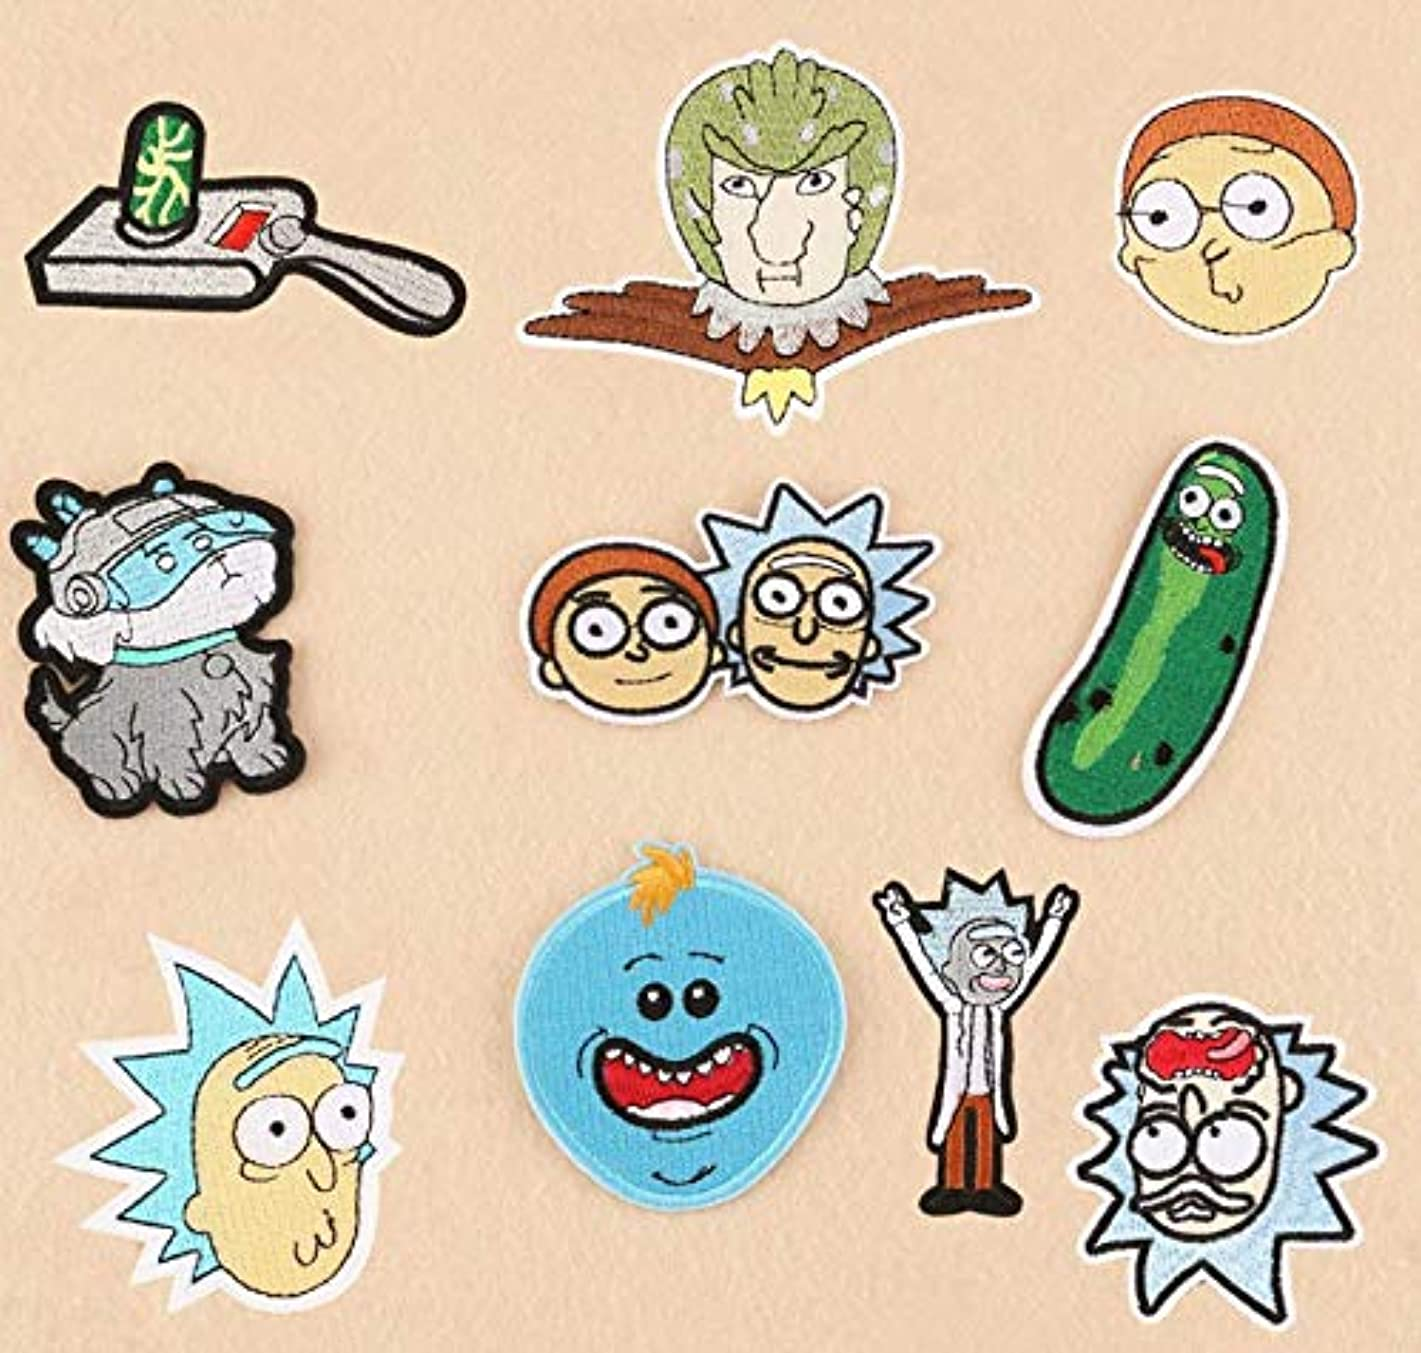 Astra Gourmet 10pcs Rick & Morty Embroidered Iron on Sew on Patches,Fabric Patches,Embroidered Badges,Appliques Patch DIY Accessory